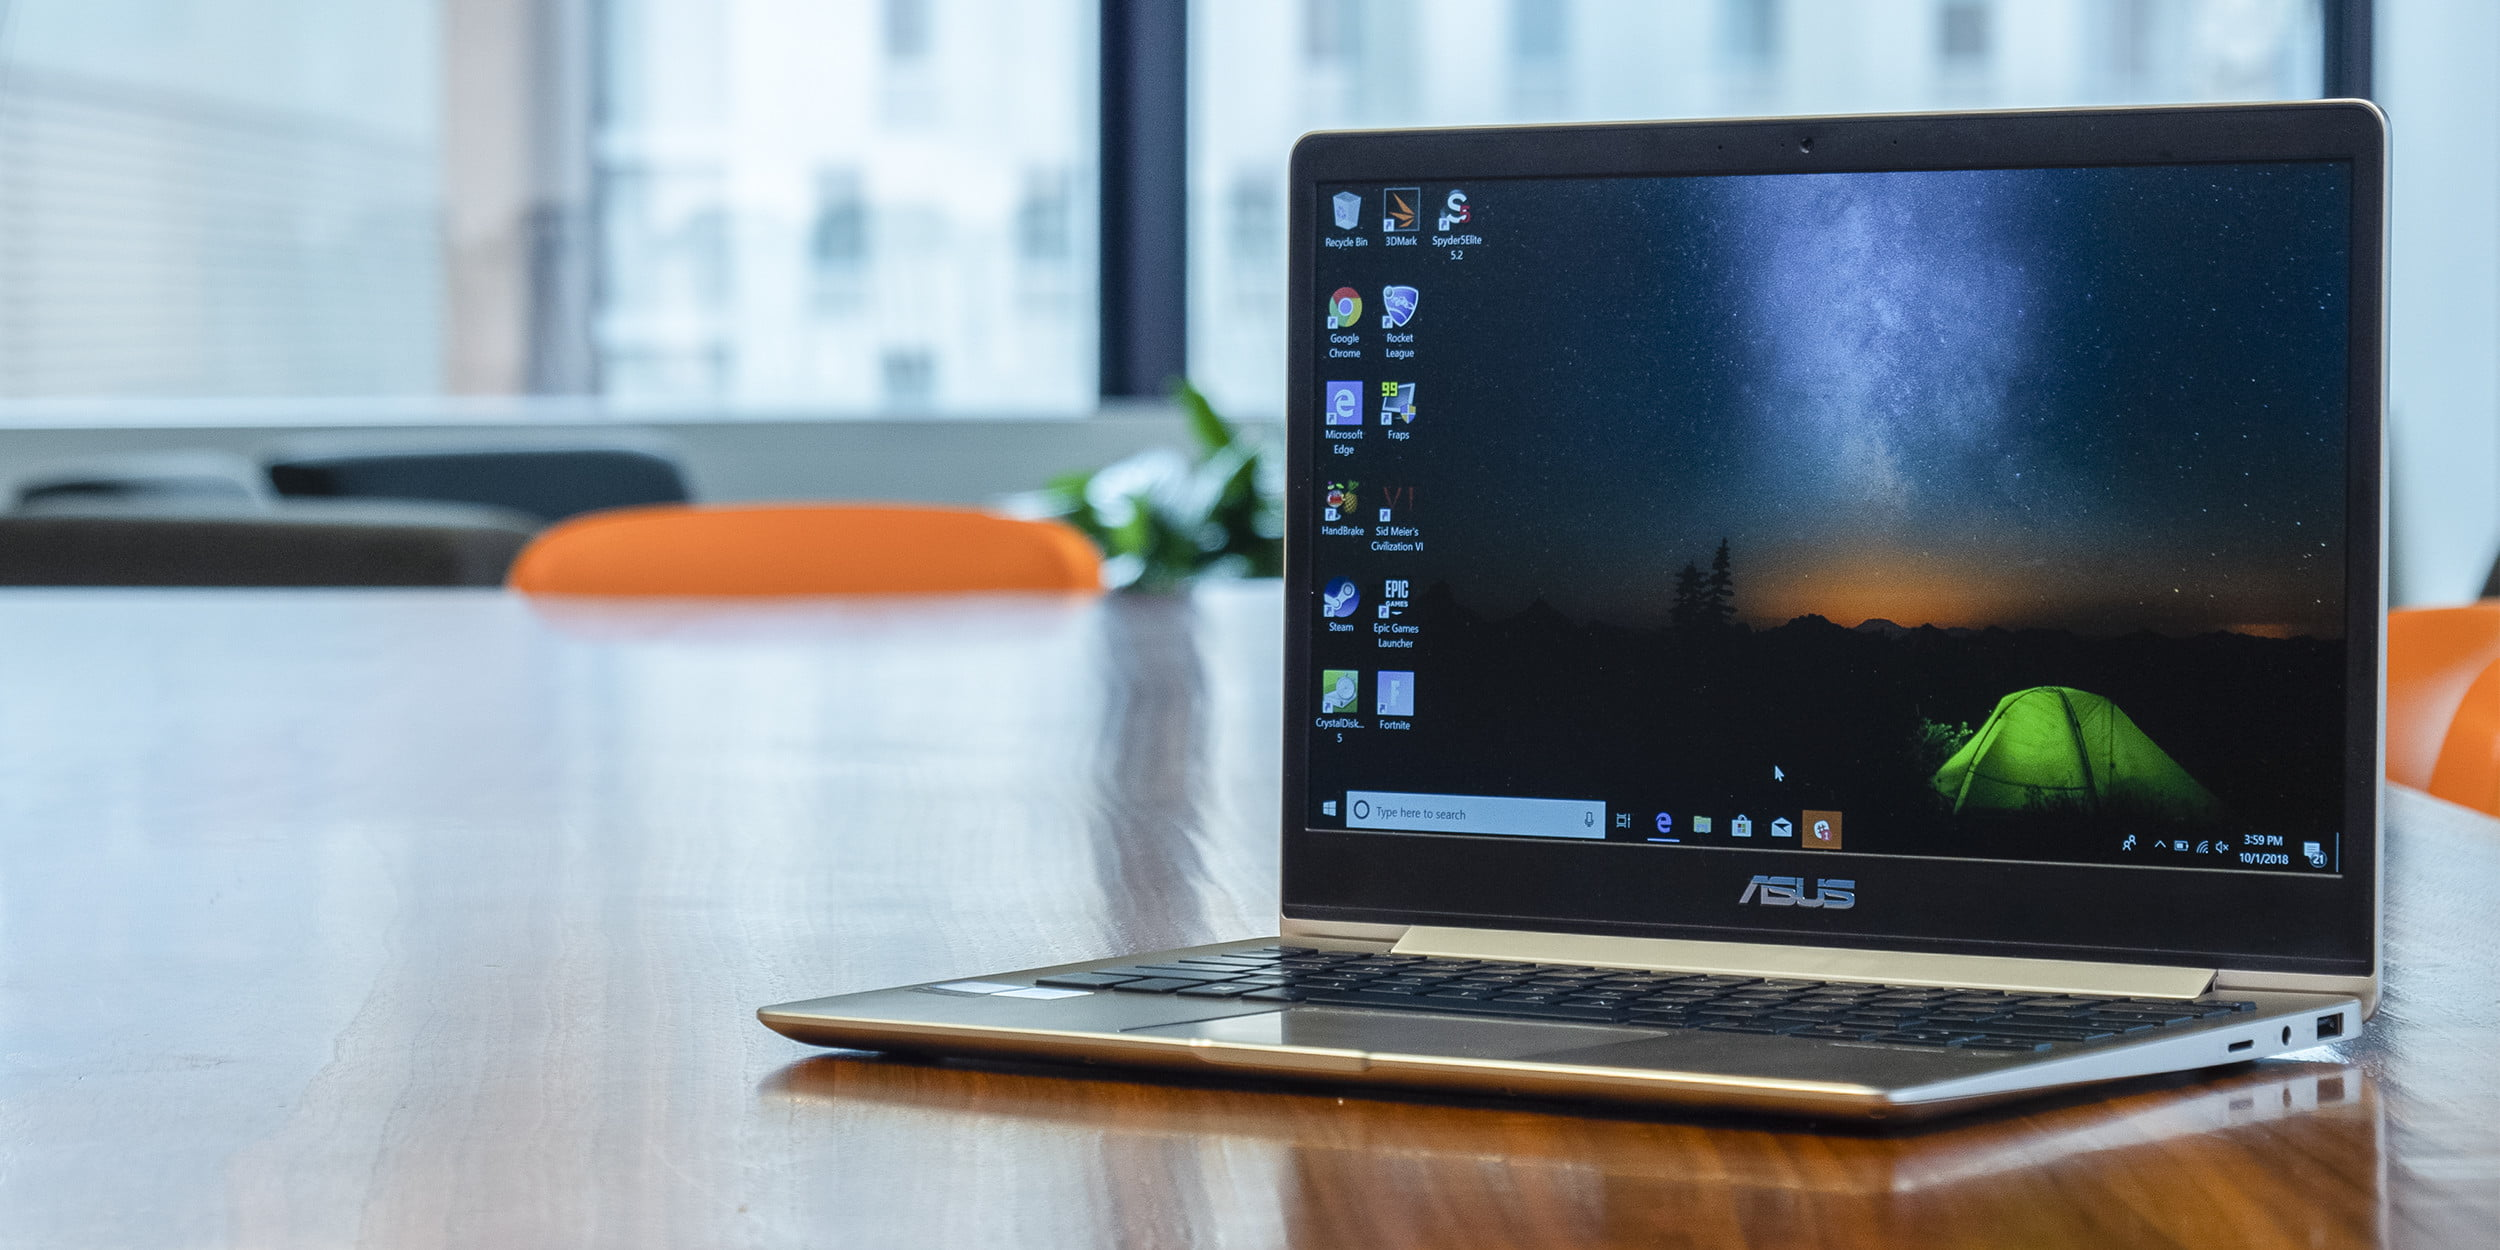 Asus ZenBook 13 UX331UA Review: Sailing Where Others Sink